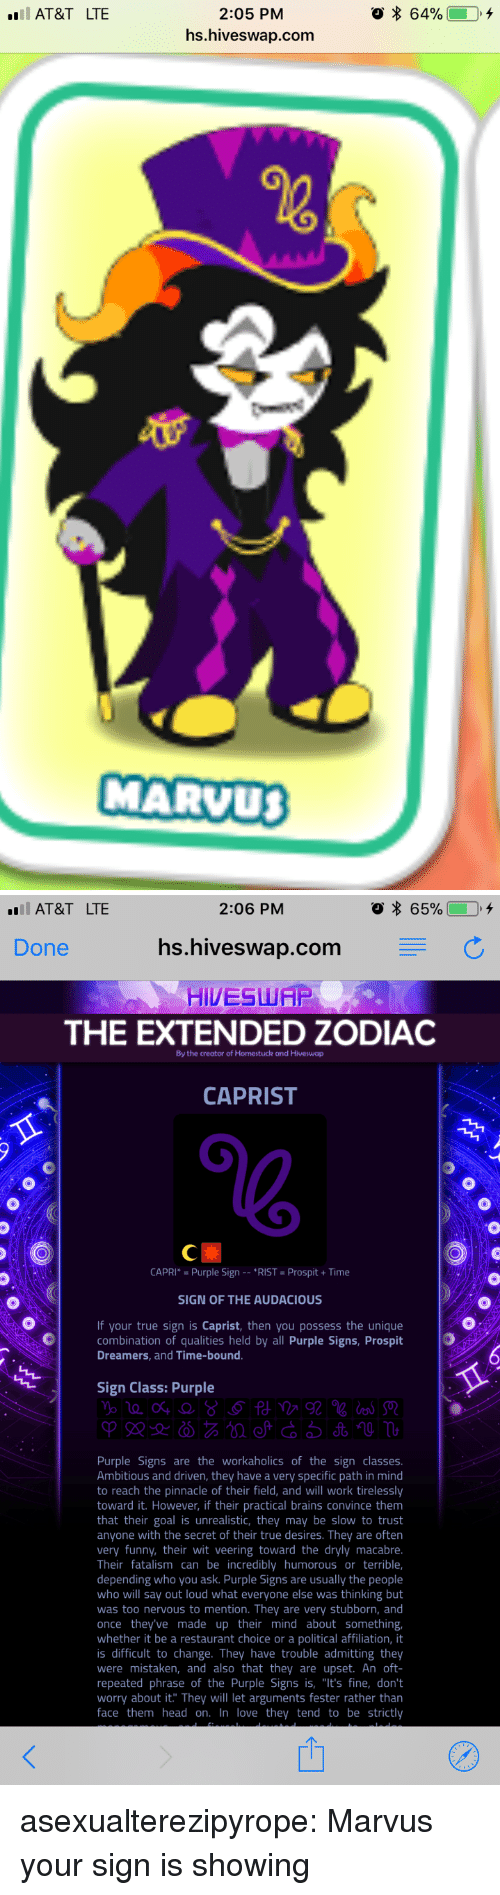 """Pinnacle: 2:05 PM  hs.hiveswap.com  AT&T LTE  MARVU   AT&T LTE  2:06 PM  Done  hs.hiveswap.com C  HIVESWAP  THE EXTENDED ZODIAC  By the creator of Homestuck and Hiveswap  CAPRIST  CAPRI* Purple Sign *RIST Prospit+Time  SIGN OF THE AUDACIOUS  If your true sign is Caprist, then you possess the unique  combination of qualities held by all Purple Signs, Prospit  Dreamers, and Time-bound  Sign Class: Purple  Purple Signs are the workaholics of the sign classes  Ambitious and driven, they have a very specific path in mind  to reach the pinnacle of their field, and will work tirelessly  toward it. However, if their practical brains convince them  that their goal is unrealistic, they may be slow to trust  anyone with the secret of their true desires. They are often  very funny, their wit veering toward the dryly macabre  Their fatalism can be incredibly humorous or terrible,  depending who you ask. Purple Signs are usually the people  who will say out loud what everyone else was thinking but  was too nervous to mention. They are very stubborn, and  once they've made up their mind about something  whether it be a restaurant choice or a political affiliation, it  is difficult to change. They have trouble admitting they  were mistaken, and also that they are upset. An oft-  repeated phrase of the Purple Signs is, """"It's fine, don't  worry about it. They will let arguments fester rather than  face them head on. In love they tend to be strictly asexualterezipyrope:  Marvus your sign is showing"""